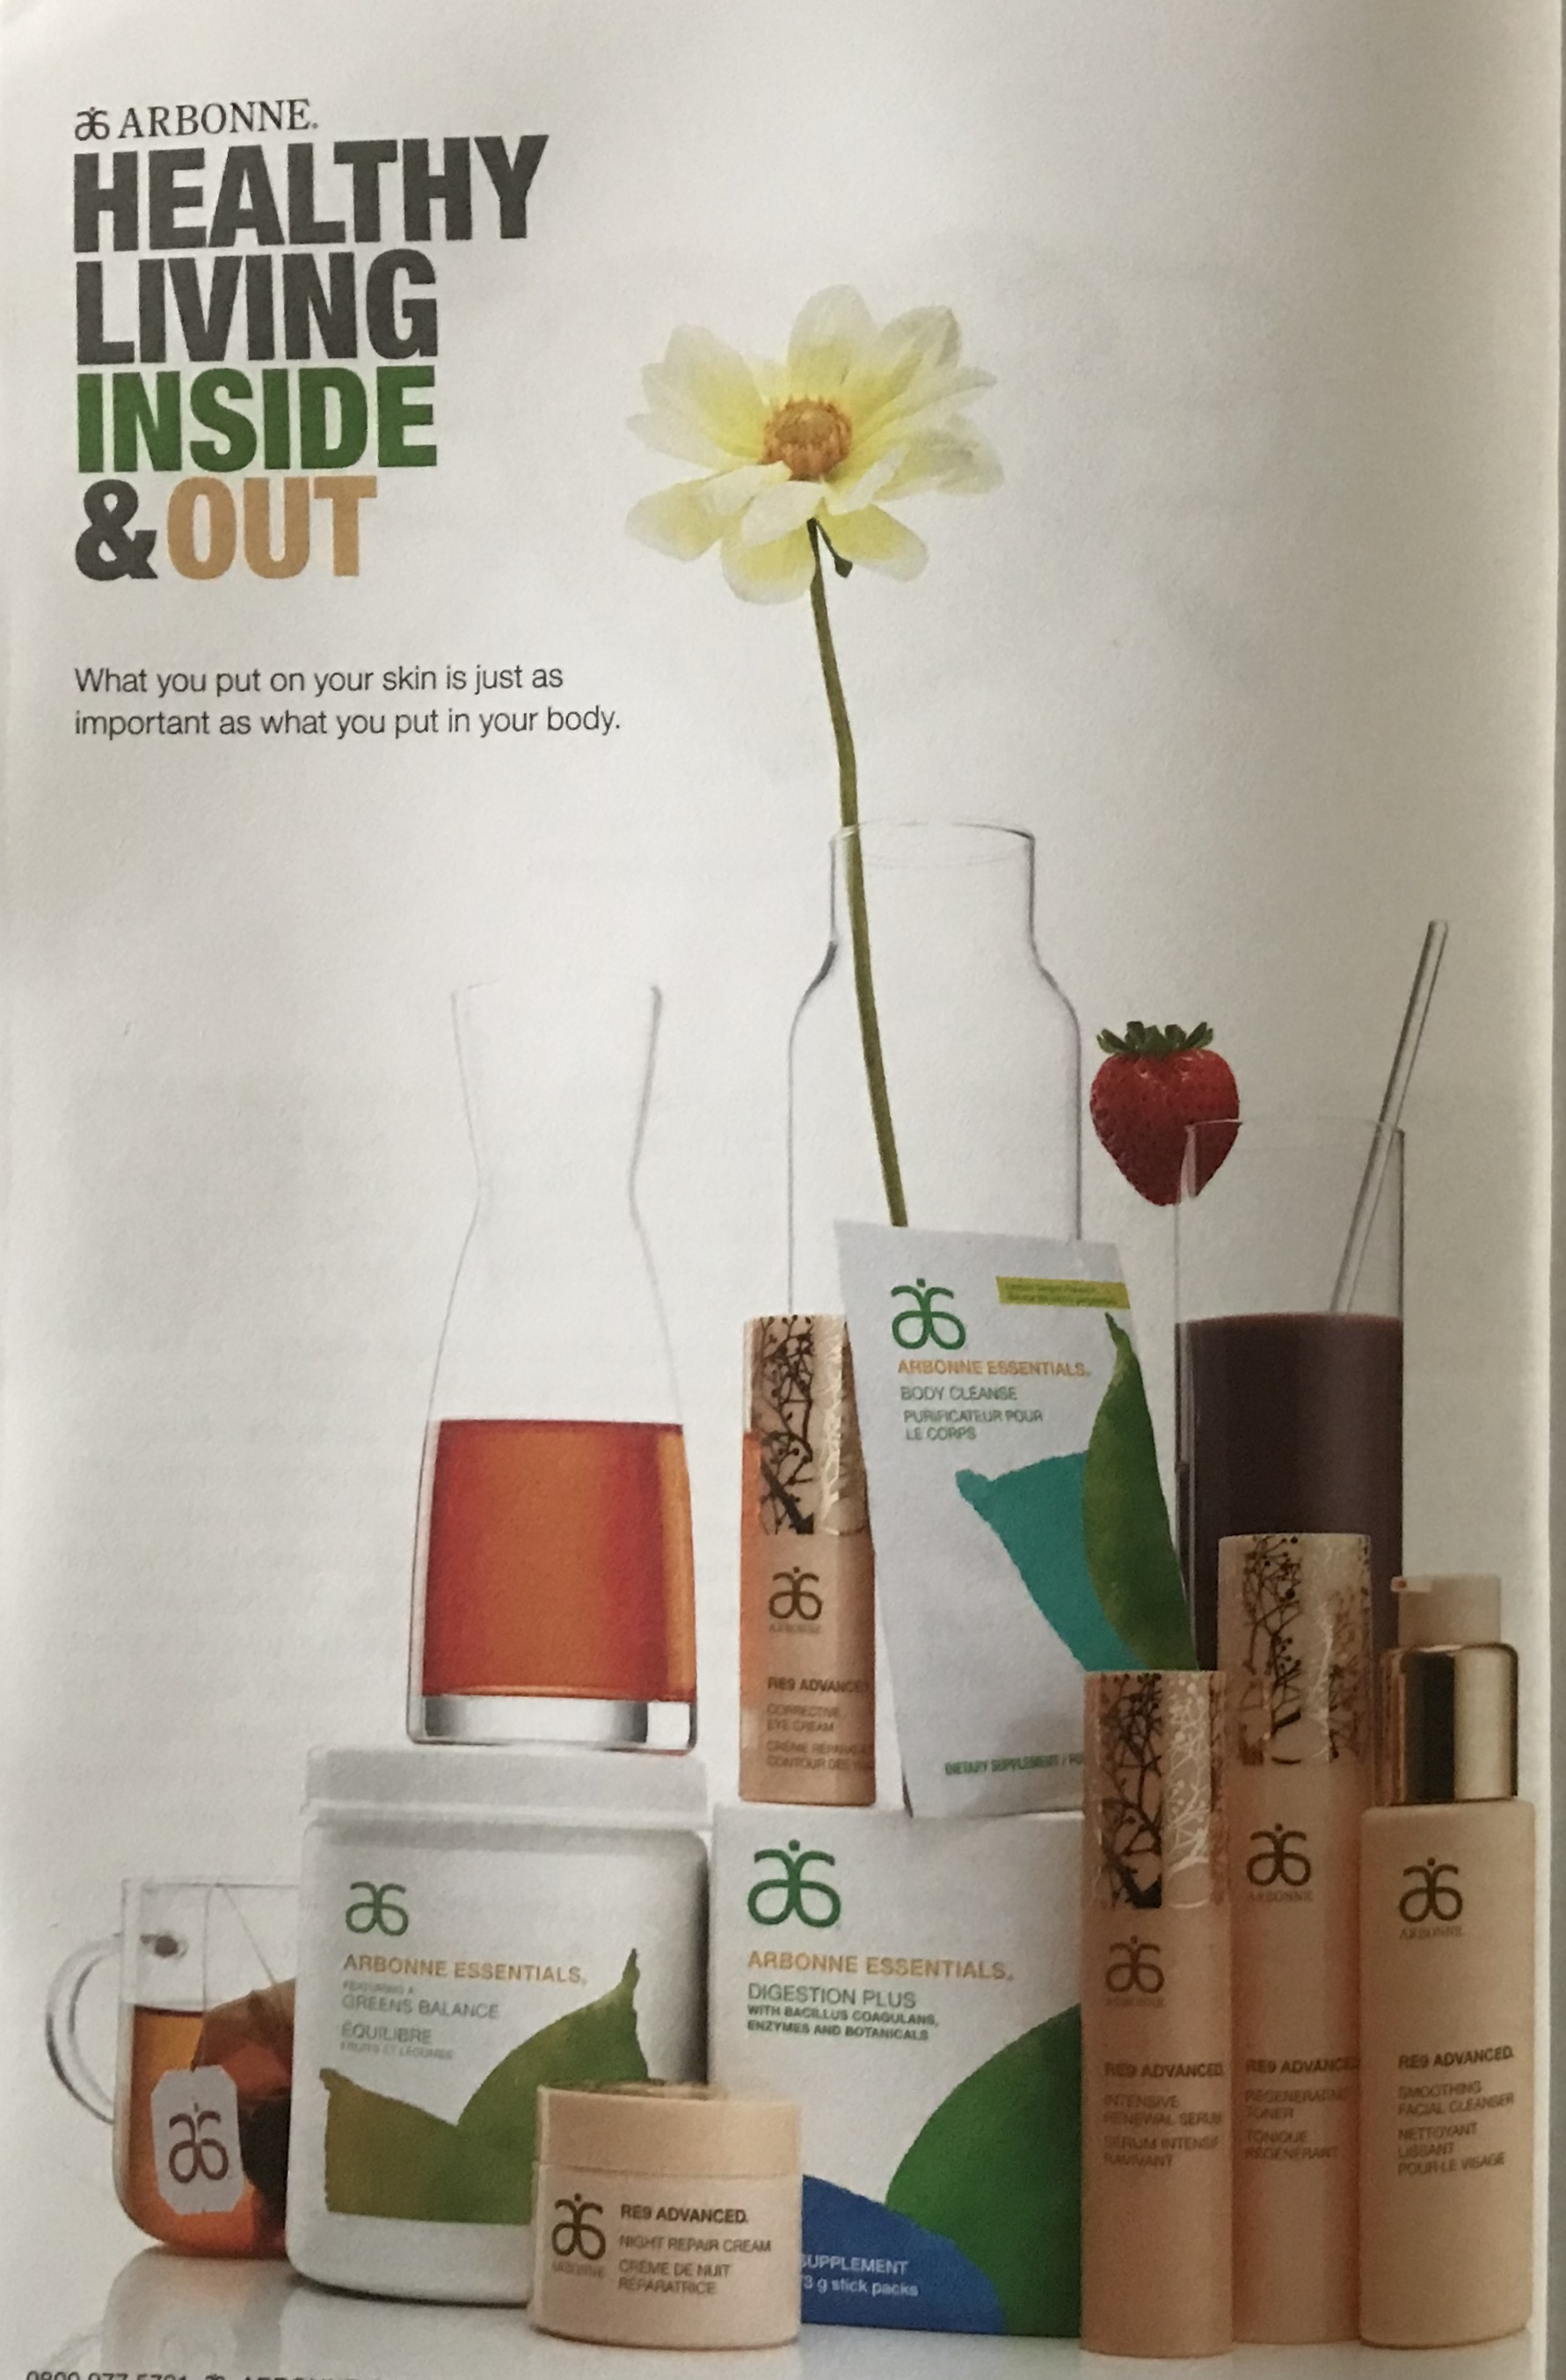 Arbonne healthy living inside and out